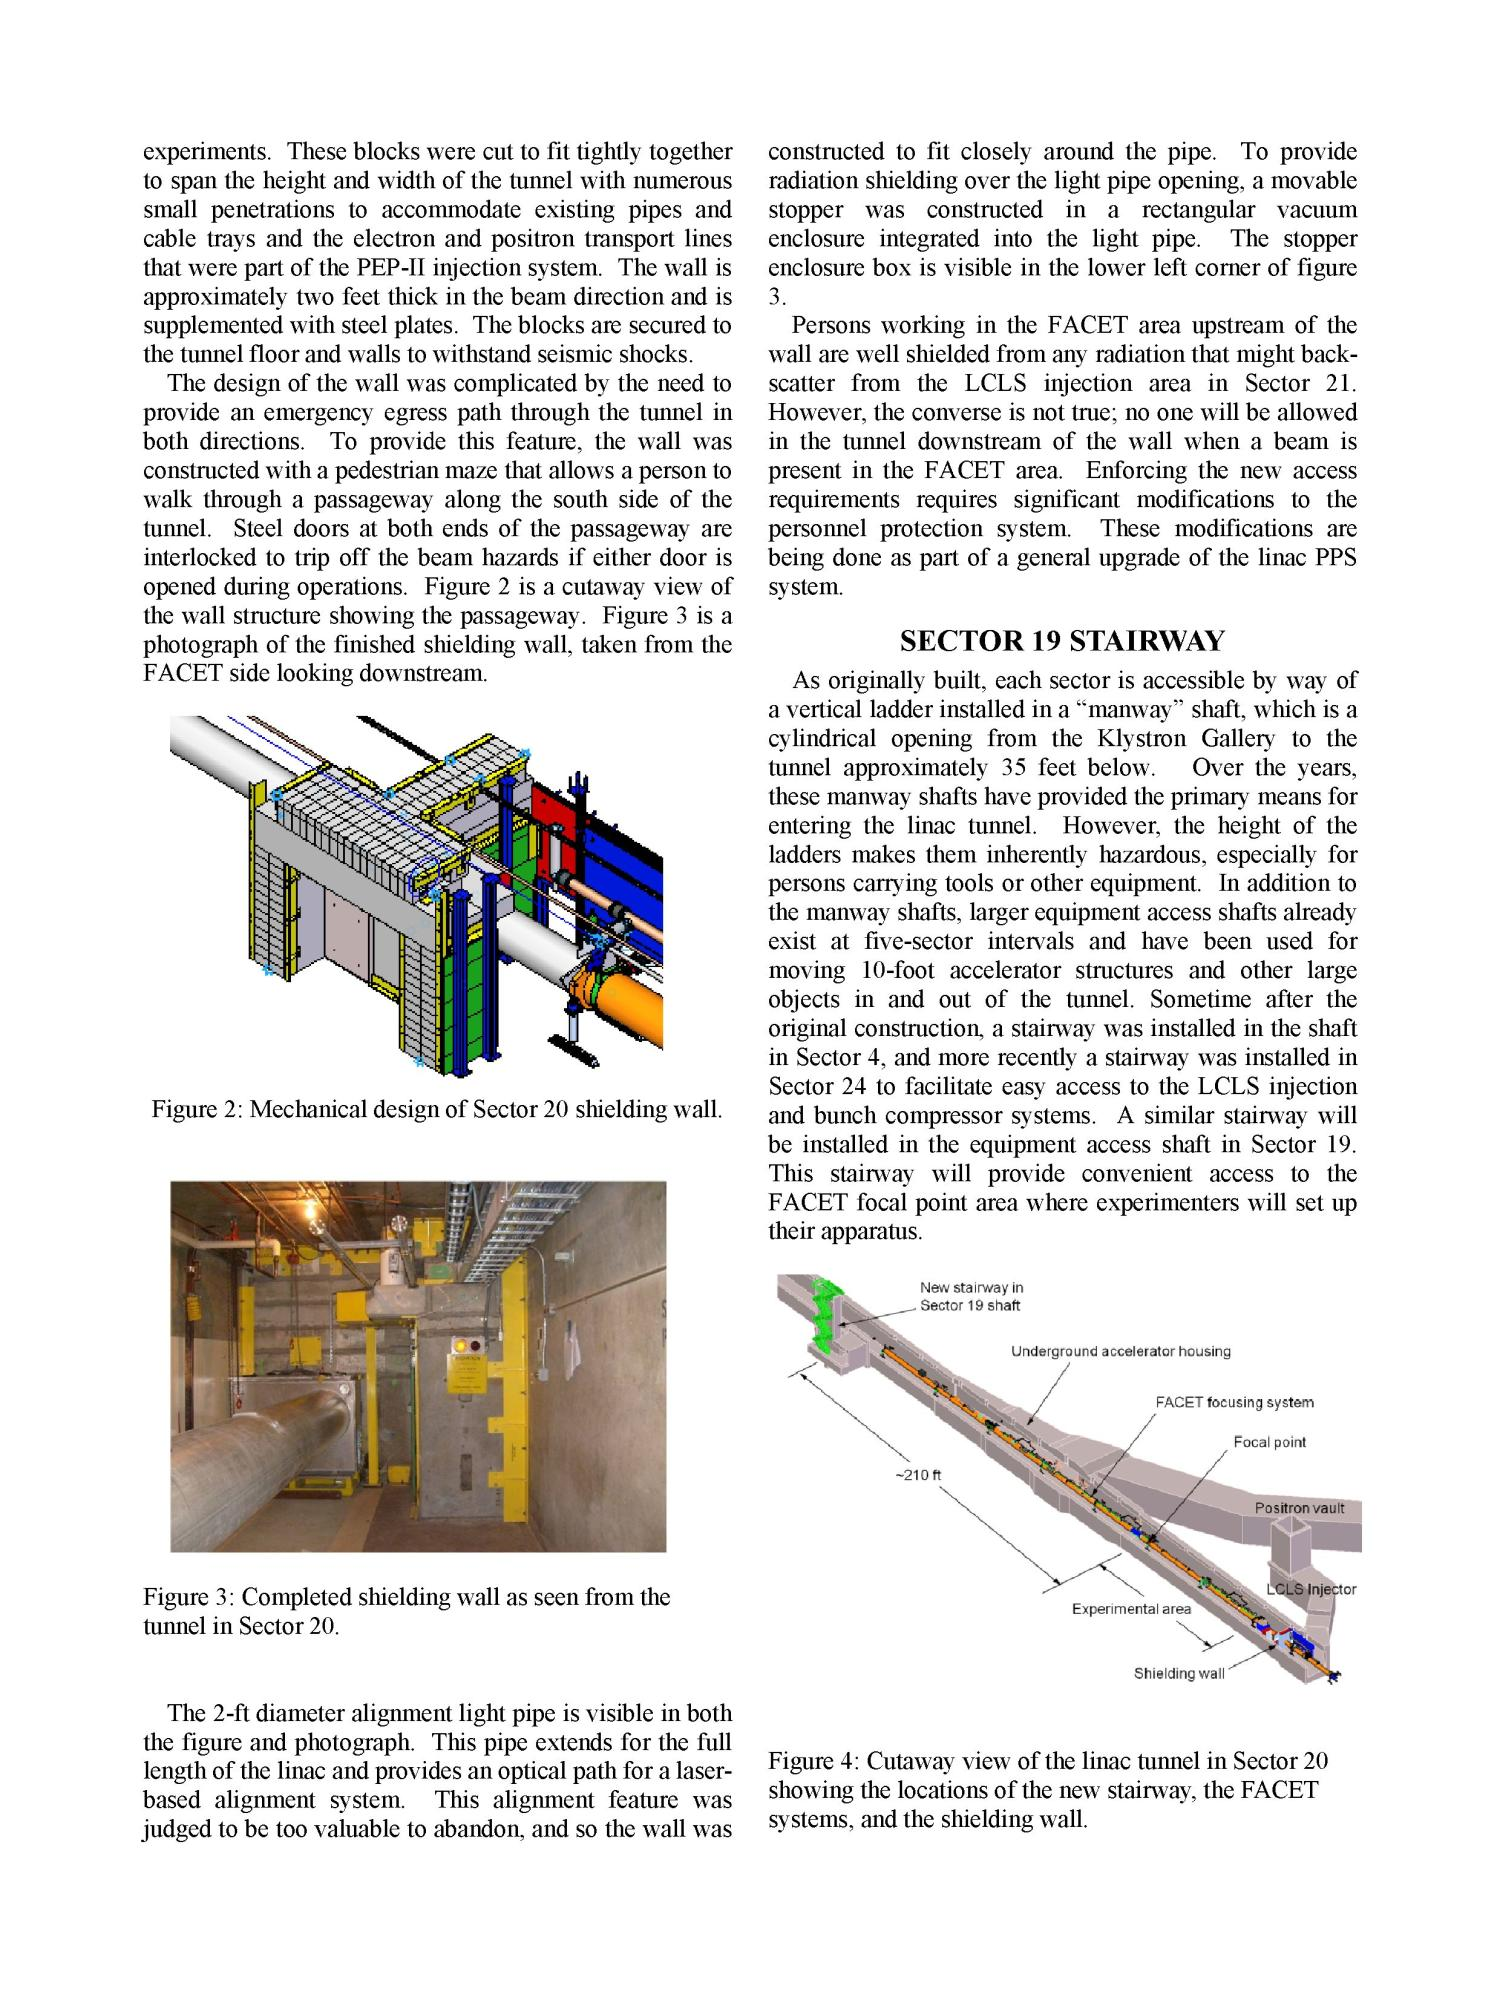 SLAC Linac Preparations for FACET                                                                                                      [Sequence #]: 2 of 3